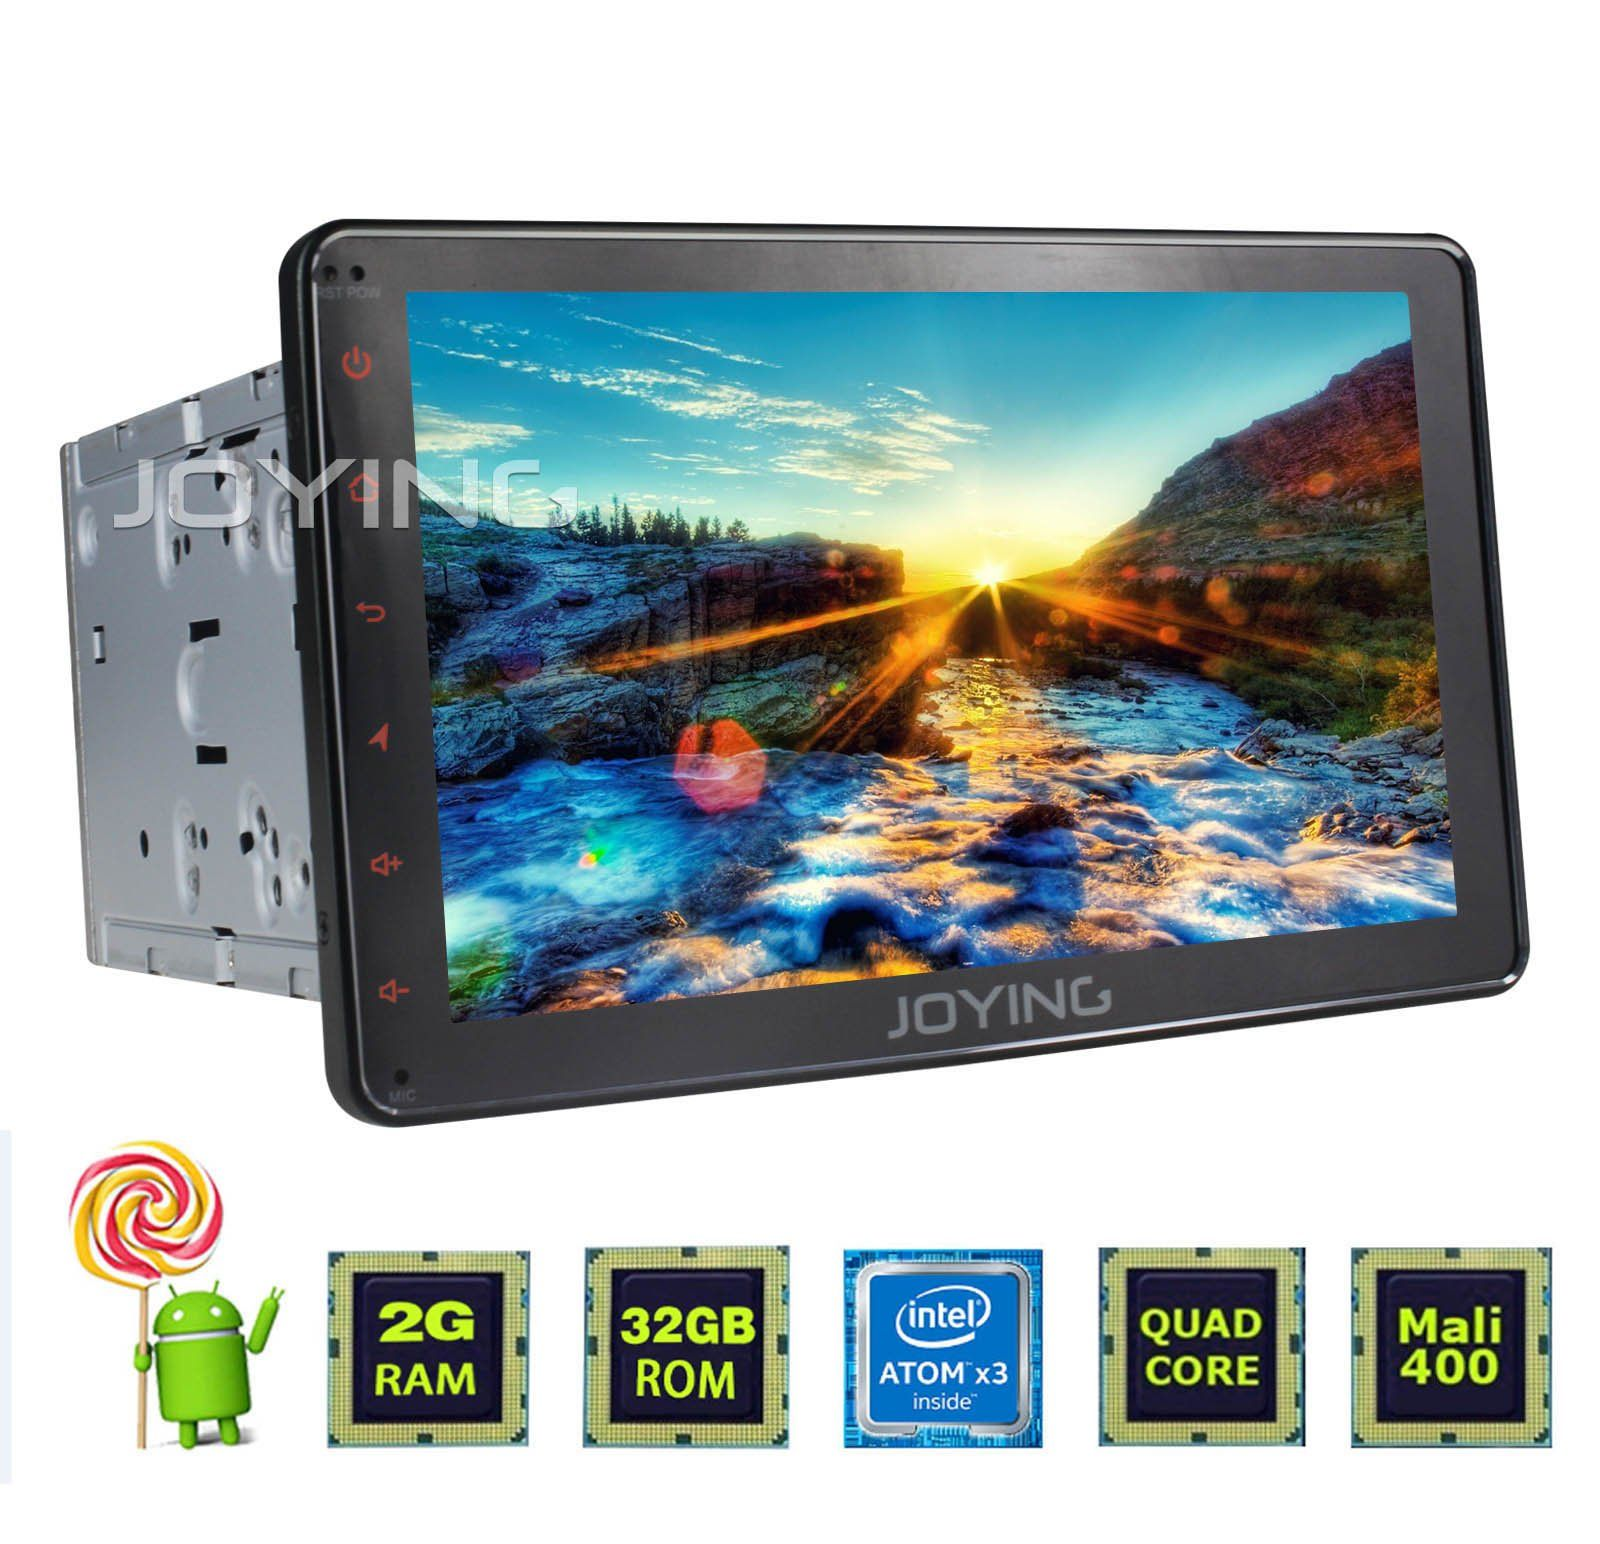 joying 8 inch android head unit double din touch screen car stereo 2gb ram intel quad core android 5 1 in dash navigation auto gps car radio audio receiver  [ 1600 x 1544 Pixel ]